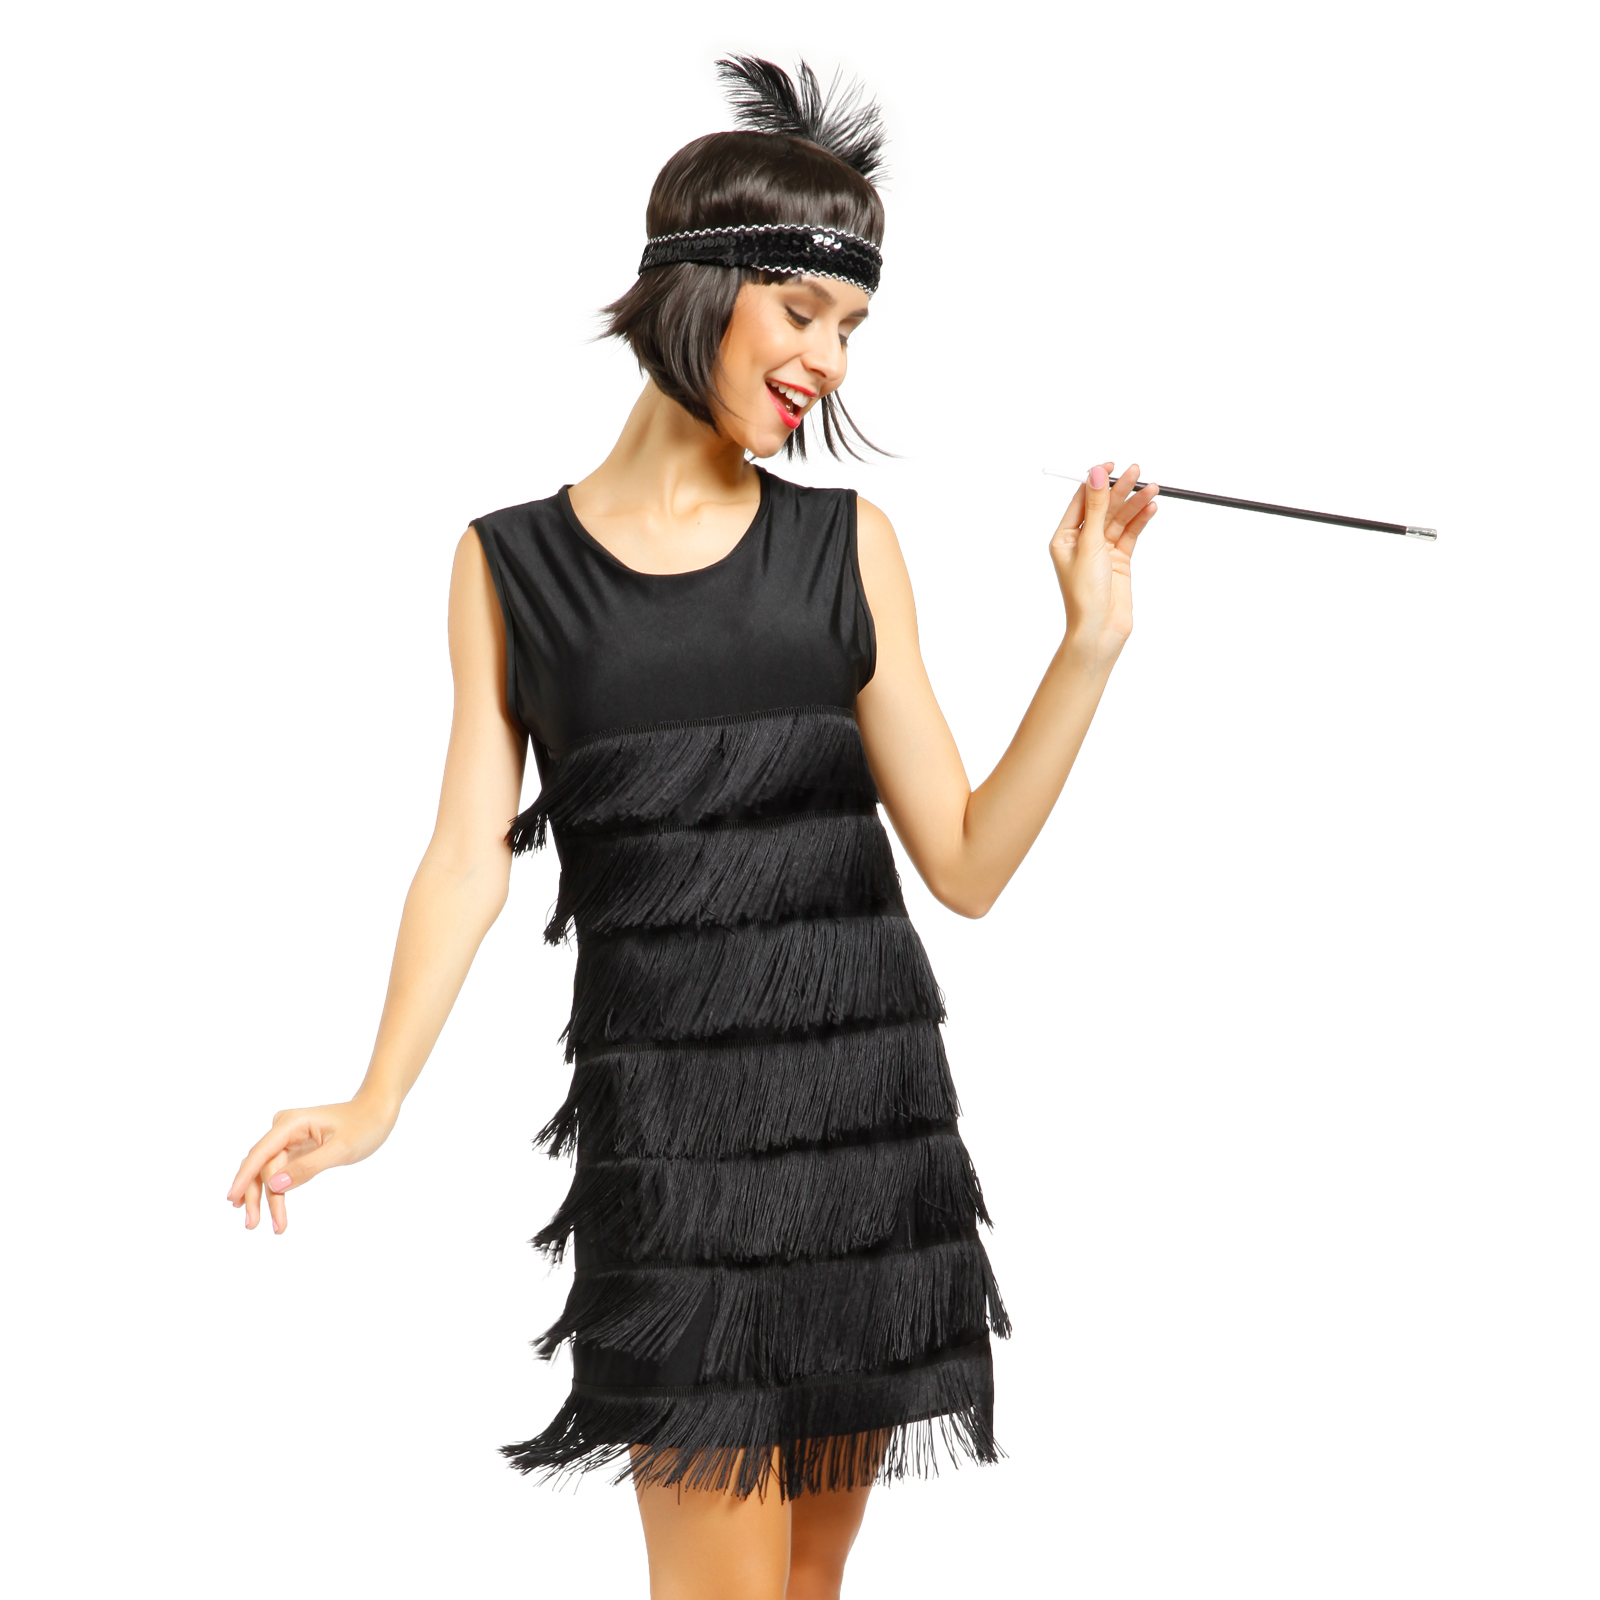 eeffc7f74d Flapper Women Dancing Dress Roaring 20s Gatsby Charleston Carnival Costume  Black